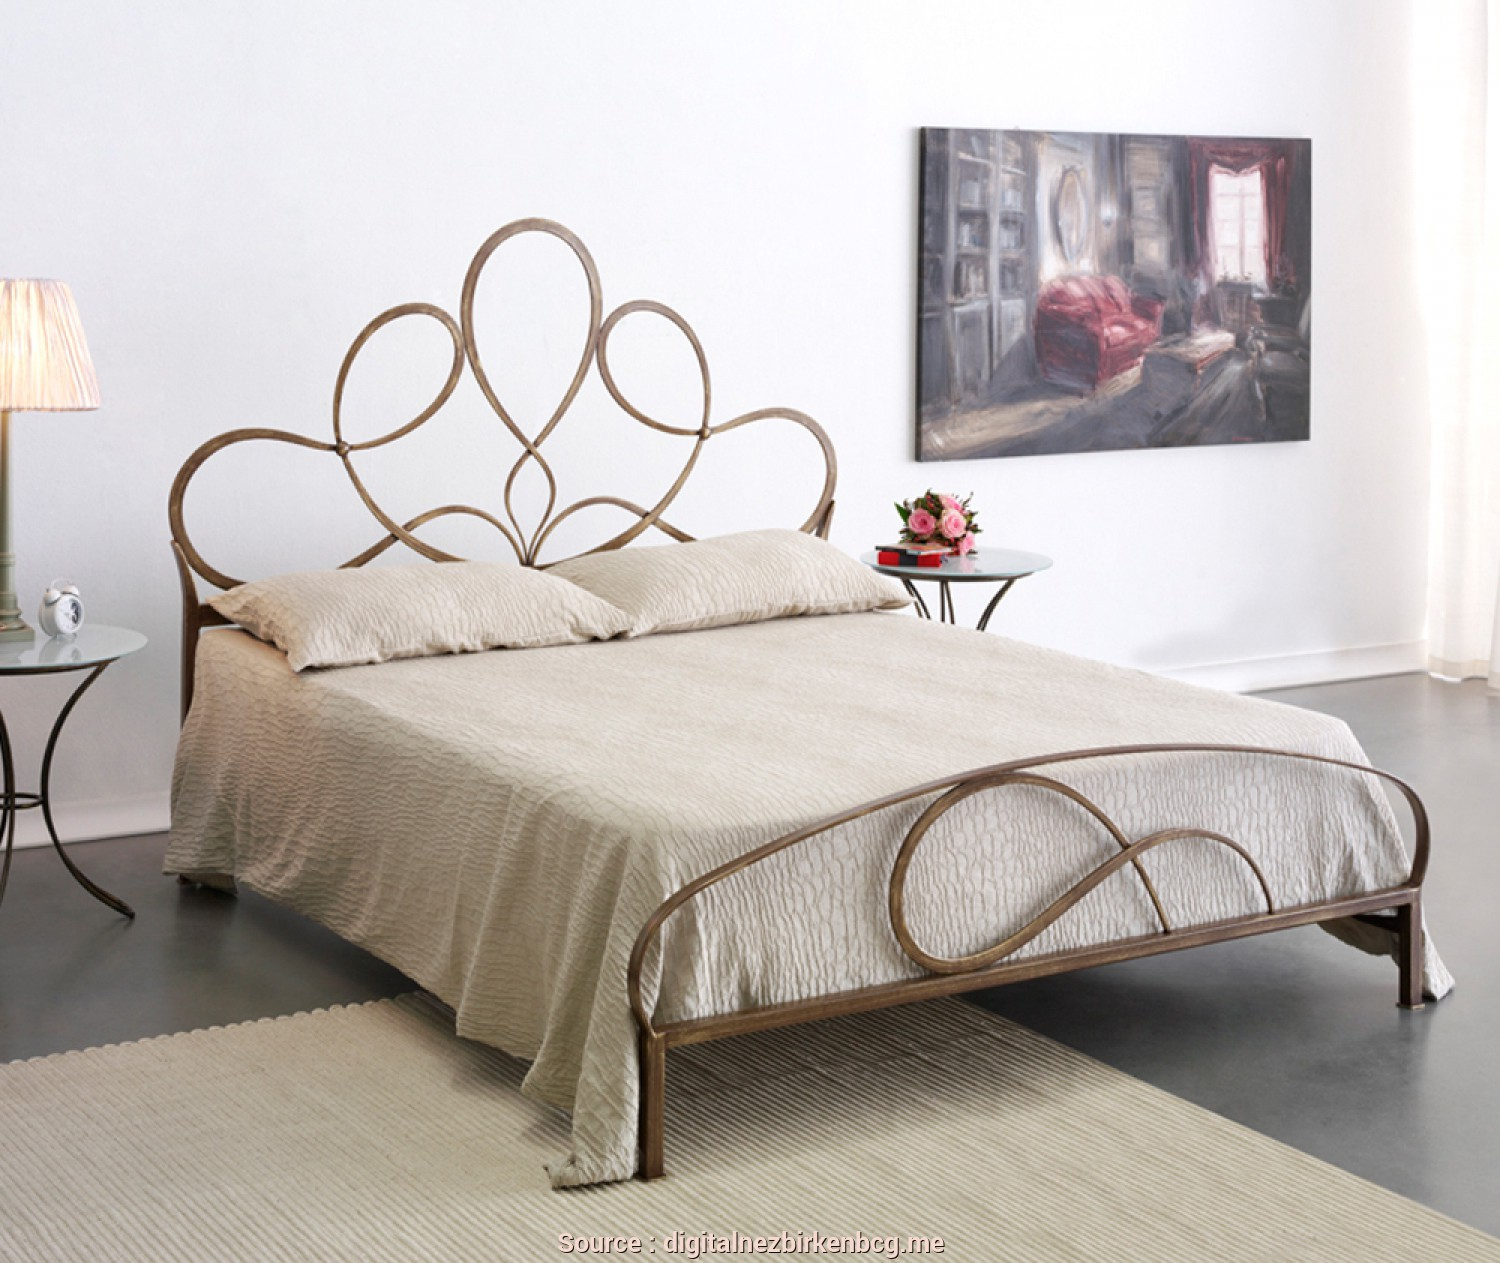 Letto King Size Mondo Convenienza, Fantasia Full Size Of Letti King Size Mondo Convenienza Letti King Size Mondo Convenienza Letto Matrimoniale King